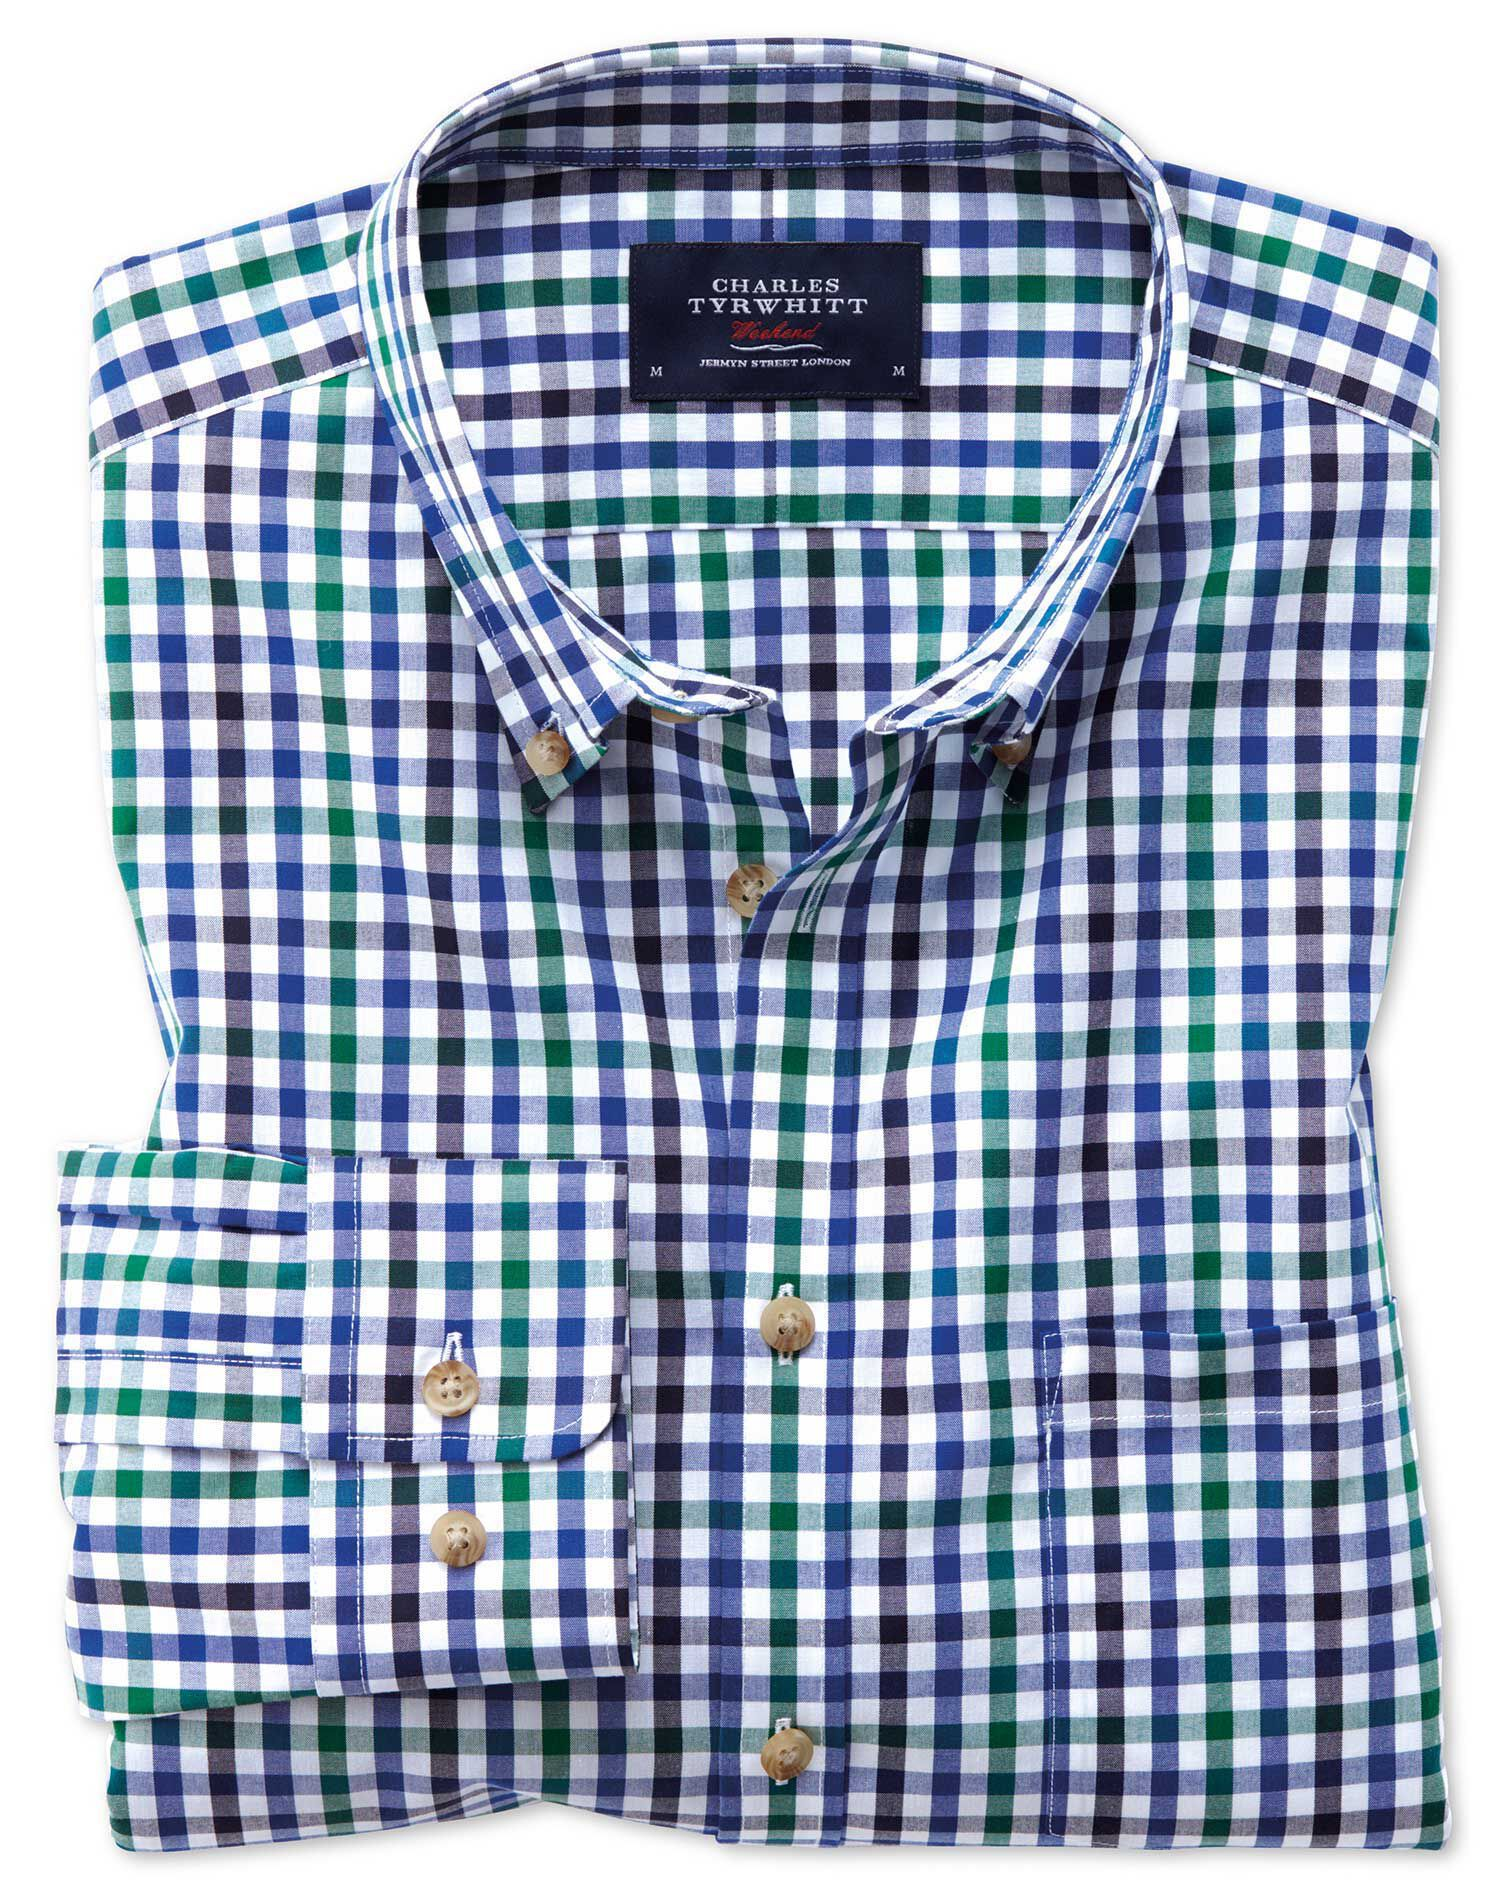 Slim Fit Button-Down Non-Iron Poplin Blue and Green Gingham Cotton Shirt Single Cuff Size XS by Char